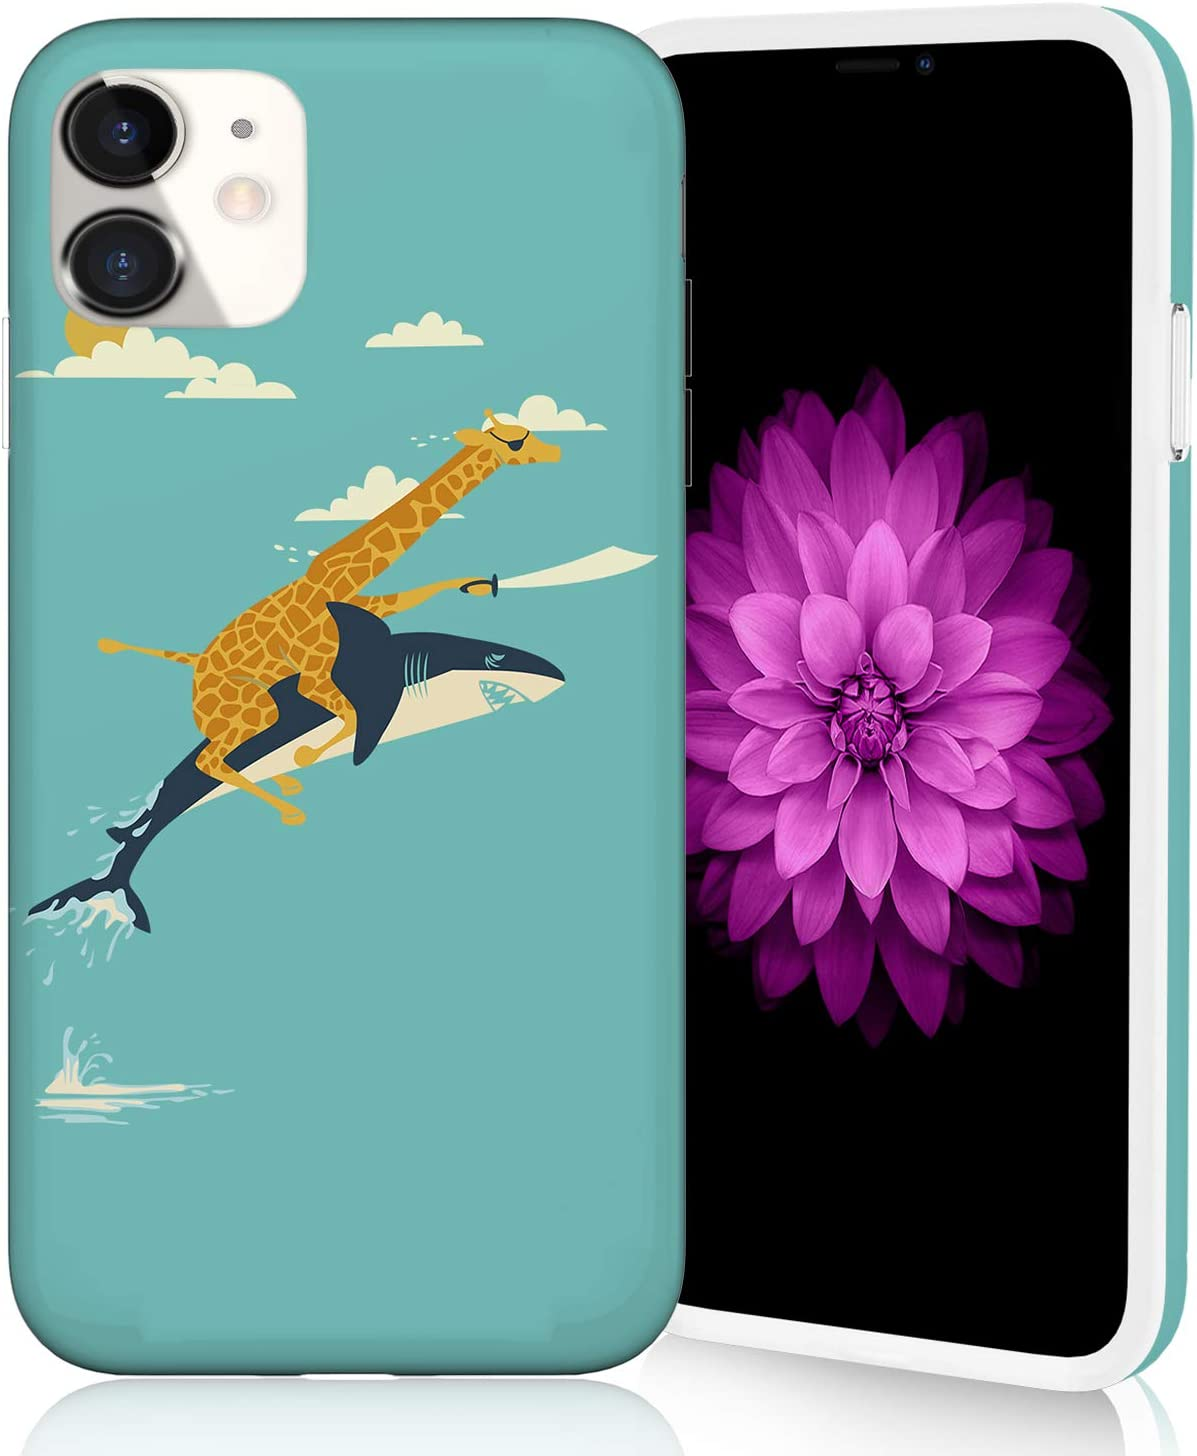 Compatible with iPhone 11 Case 2019, Raised Edges Scratch Resistant Lightweight Flexible Soft TPU Floral Pattern Protective Phone Cover for iPhone 11 - Giraffe and Shark